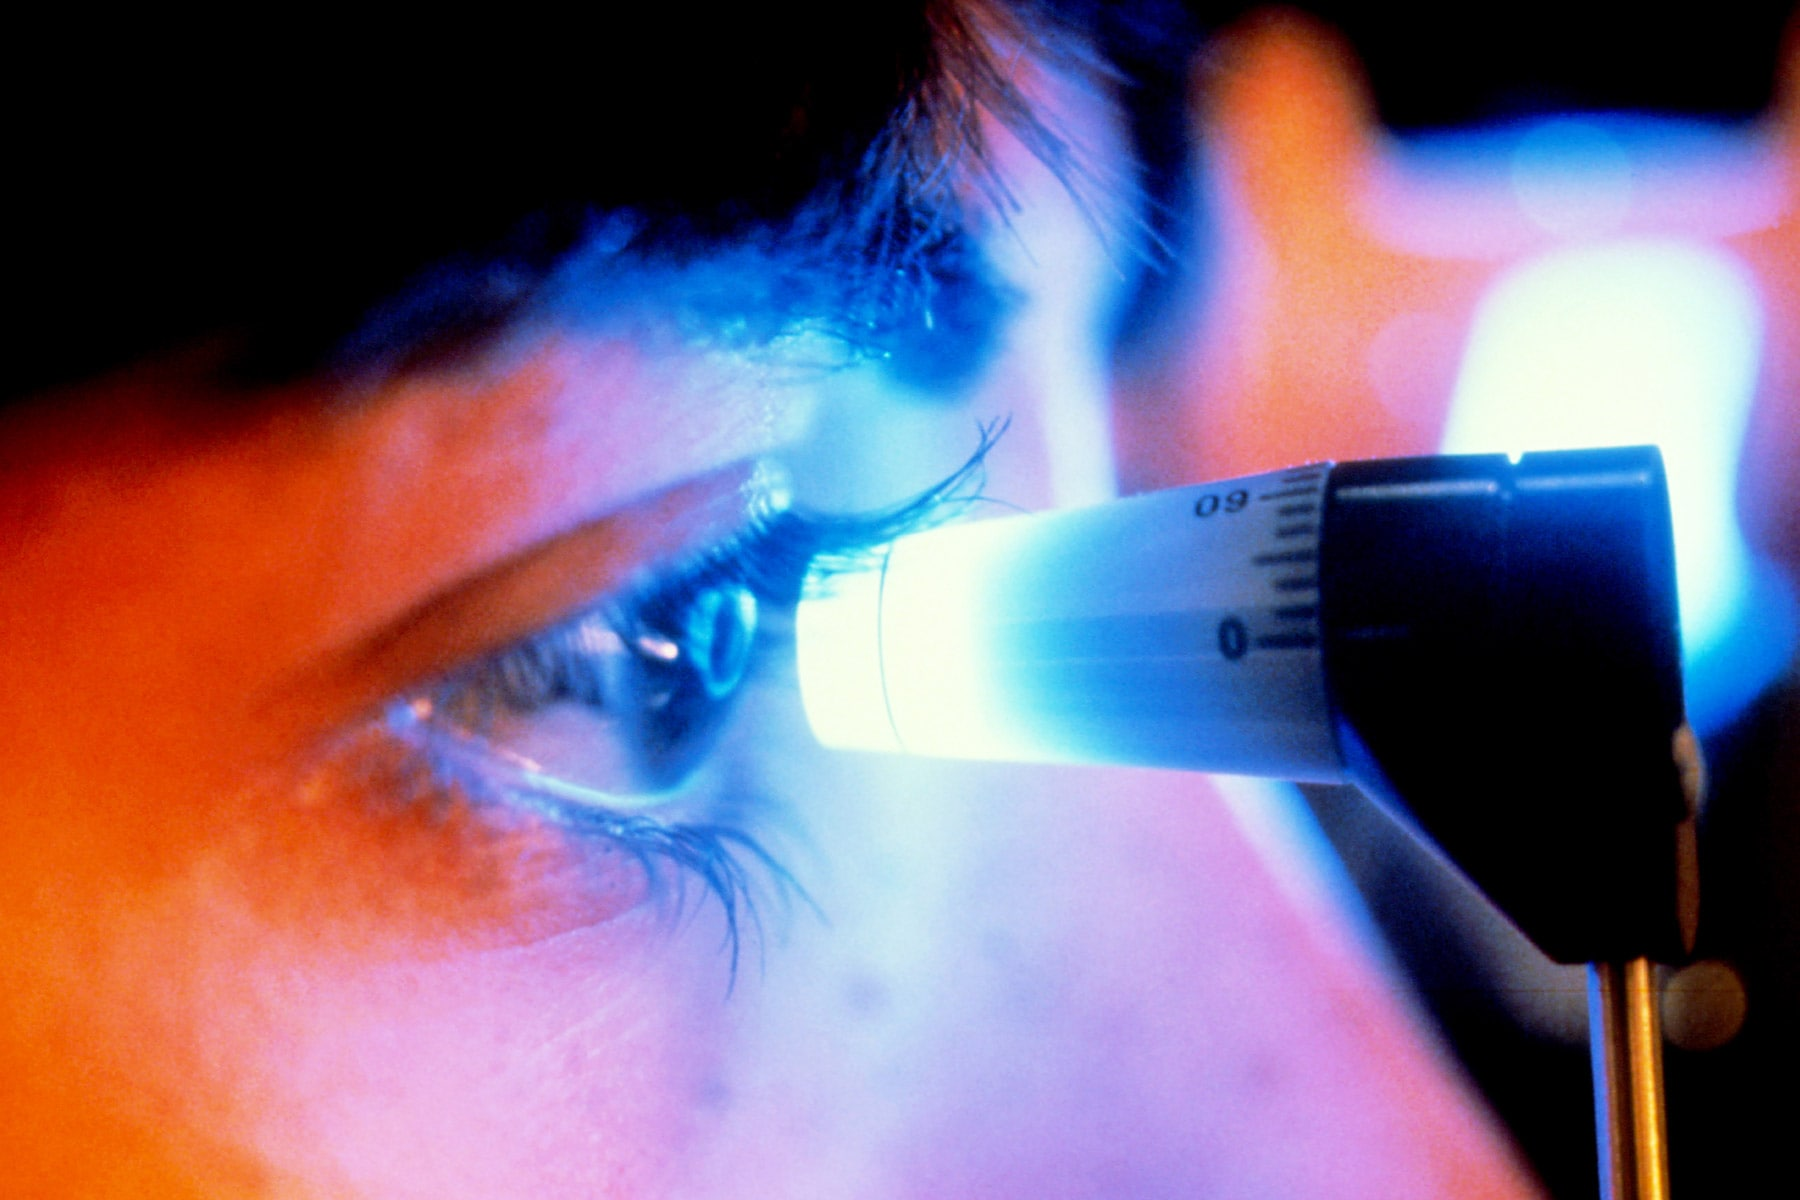 photo of eye pressure test for glaucoma